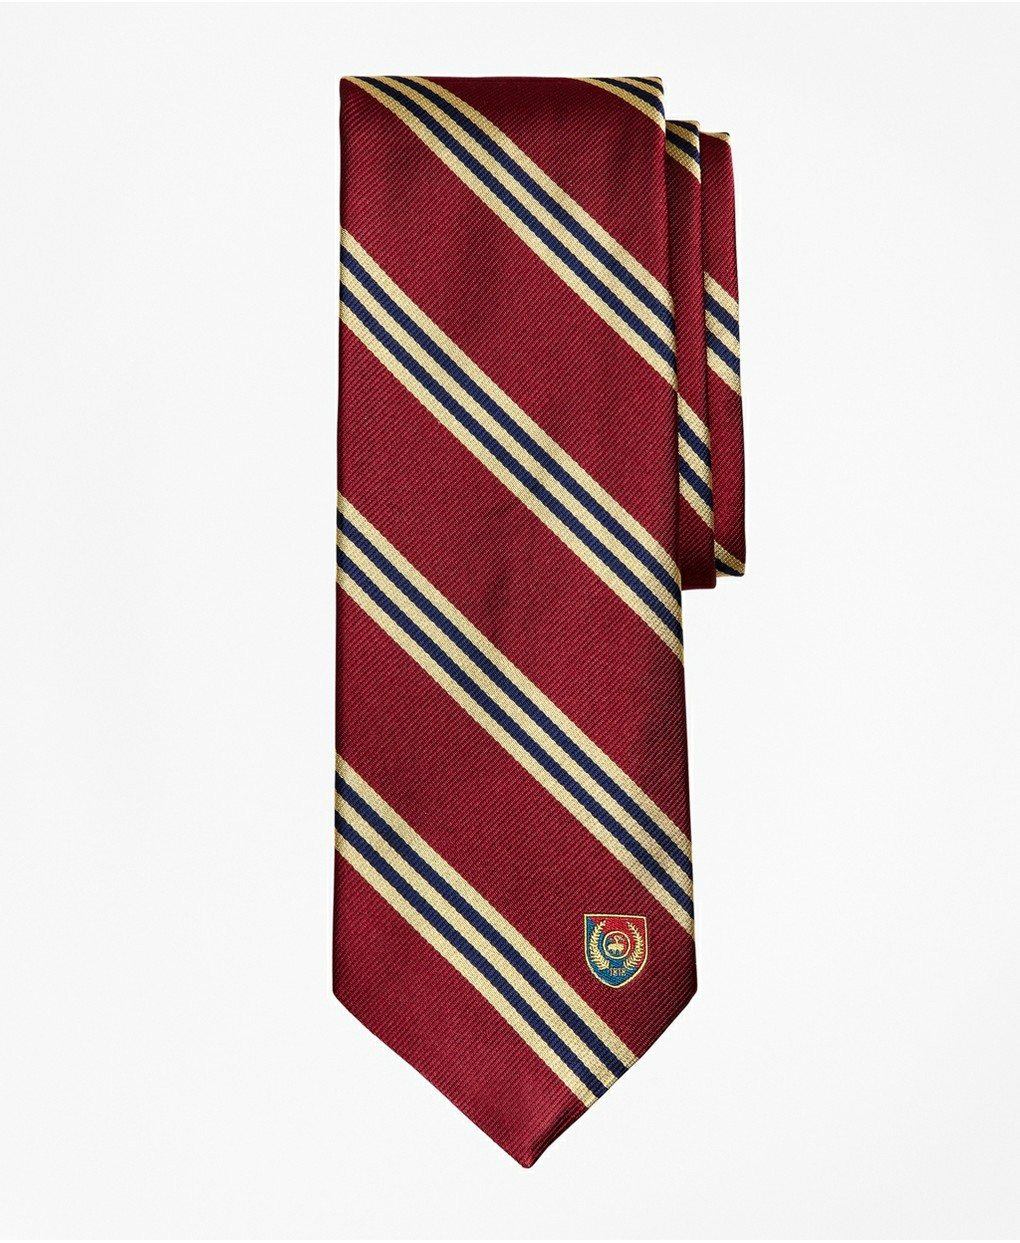 Limited Edition Archival Collection BB#1 Striped Rep with Crest Silk Tie